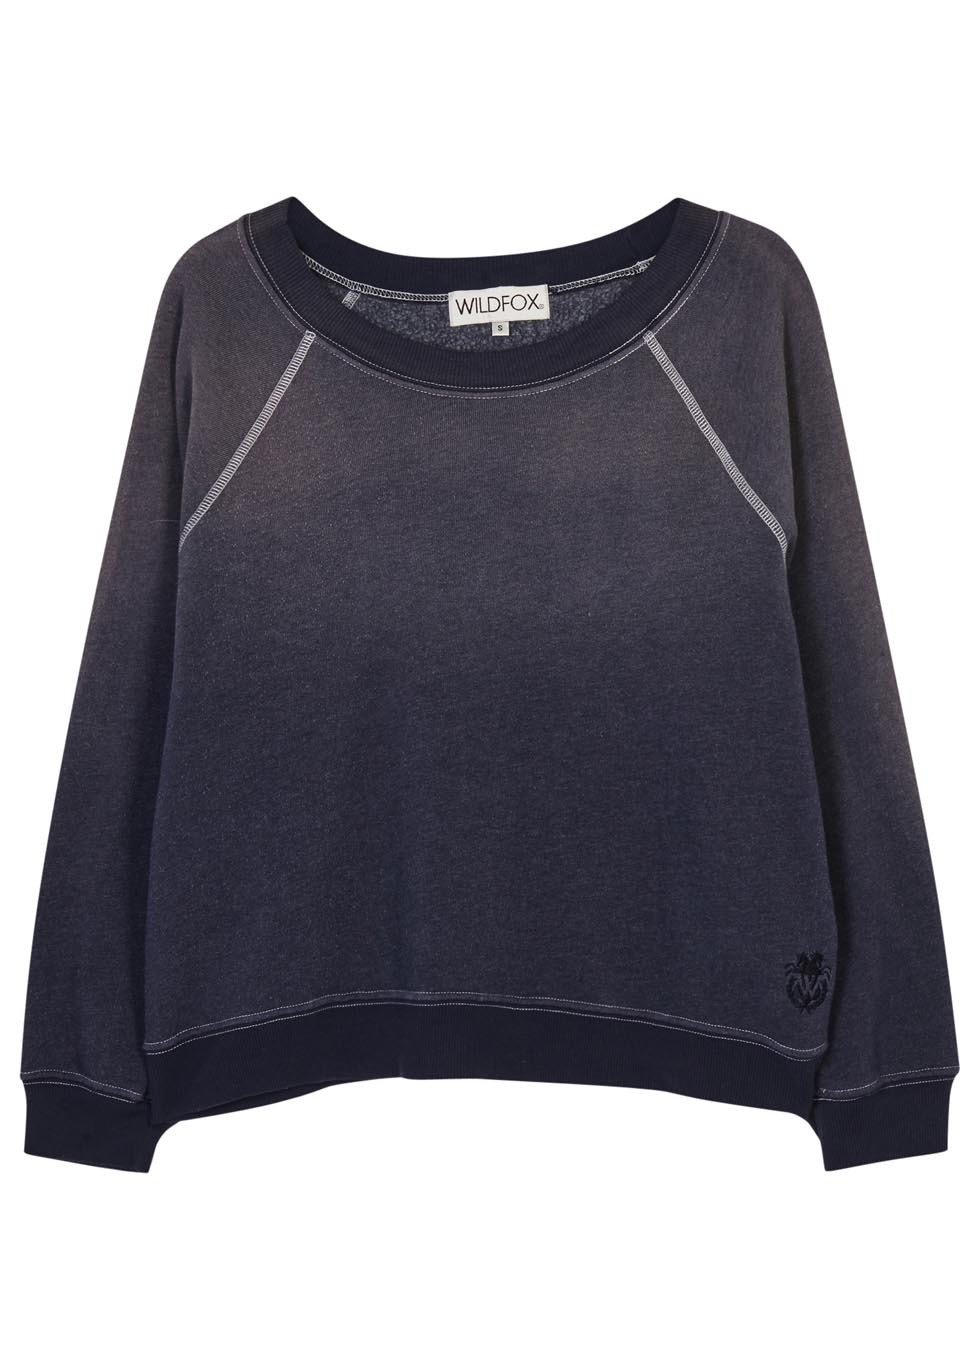 Kim's Navy Cotton Blend Sweatshirt - neckline: round neck; pattern: plain; style: sweat top; predominant colour: navy; occasions: casual, activity; length: standard; fibres: cotton - mix; fit: loose; sleeve length: long sleeve; sleeve style: standard; pattern type: fabric; texture group: jersey - stretchy/drapey; season: s/s 2016